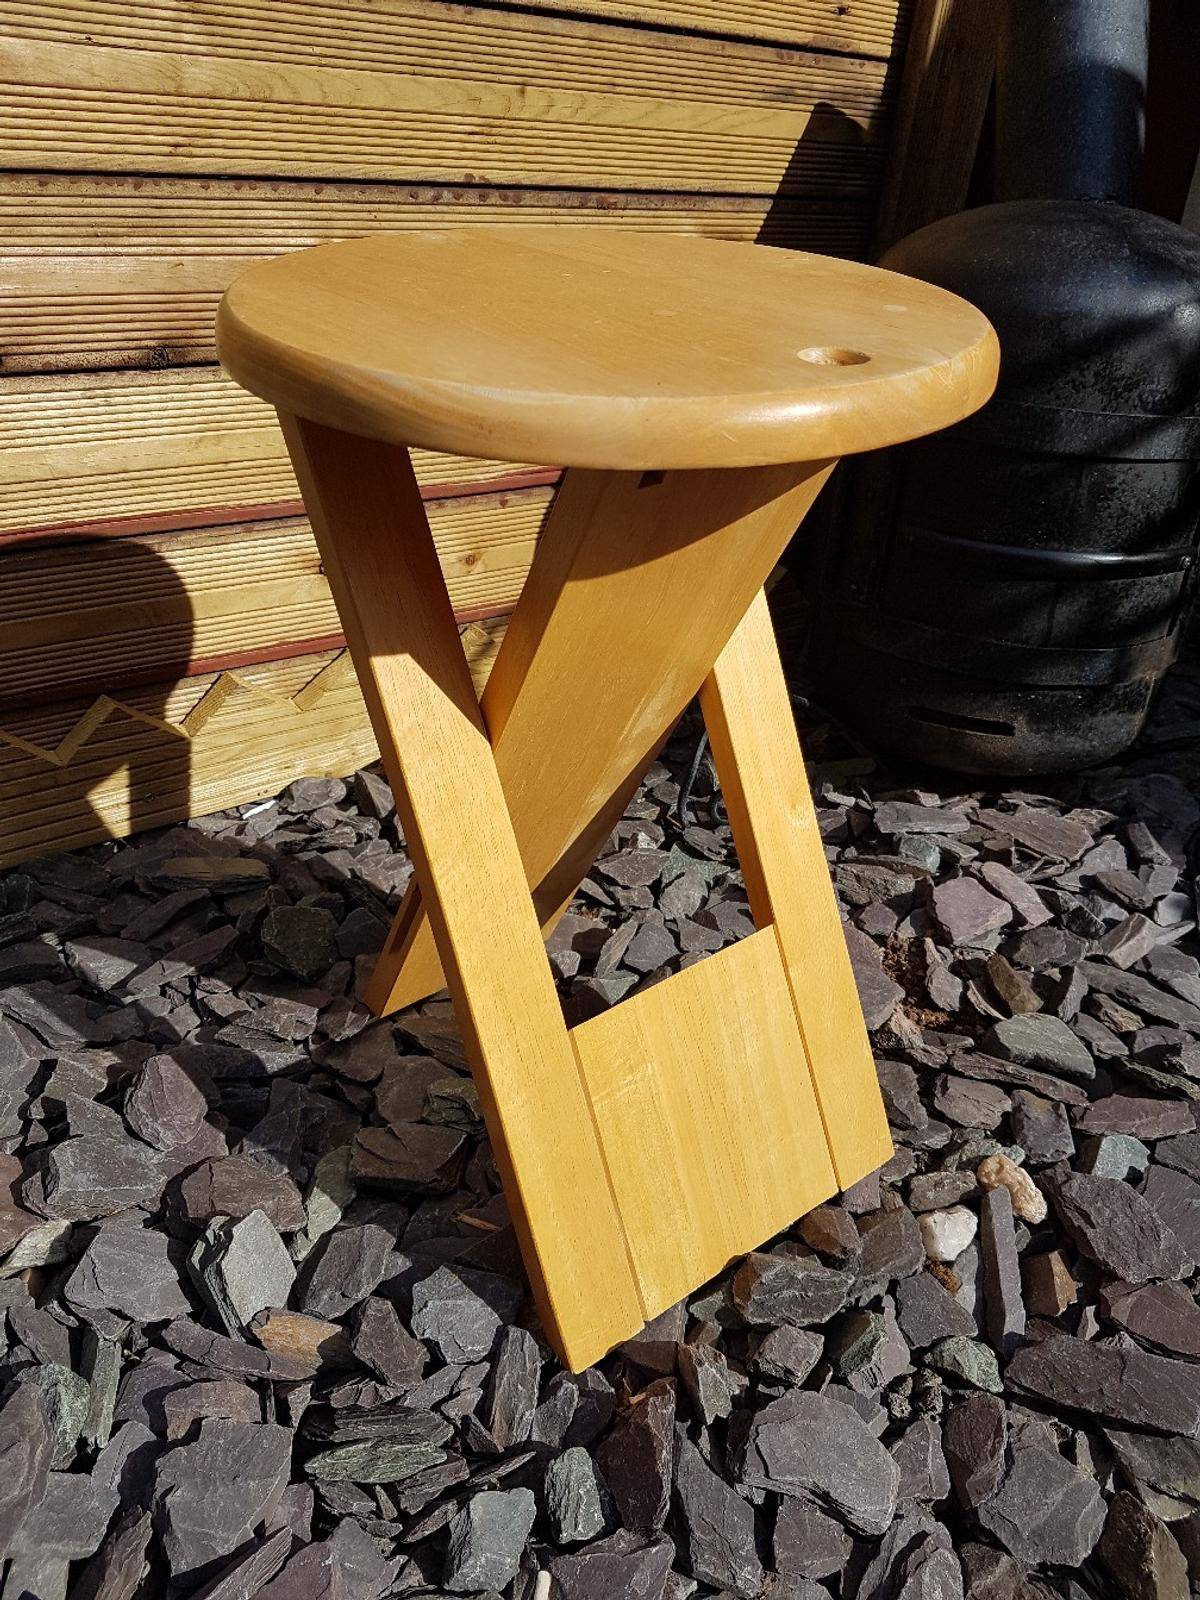 Swell Rare Roger Tallon Retro Folding Stools In Dn17 Scunthorpe Pdpeps Interior Chair Design Pdpepsorg